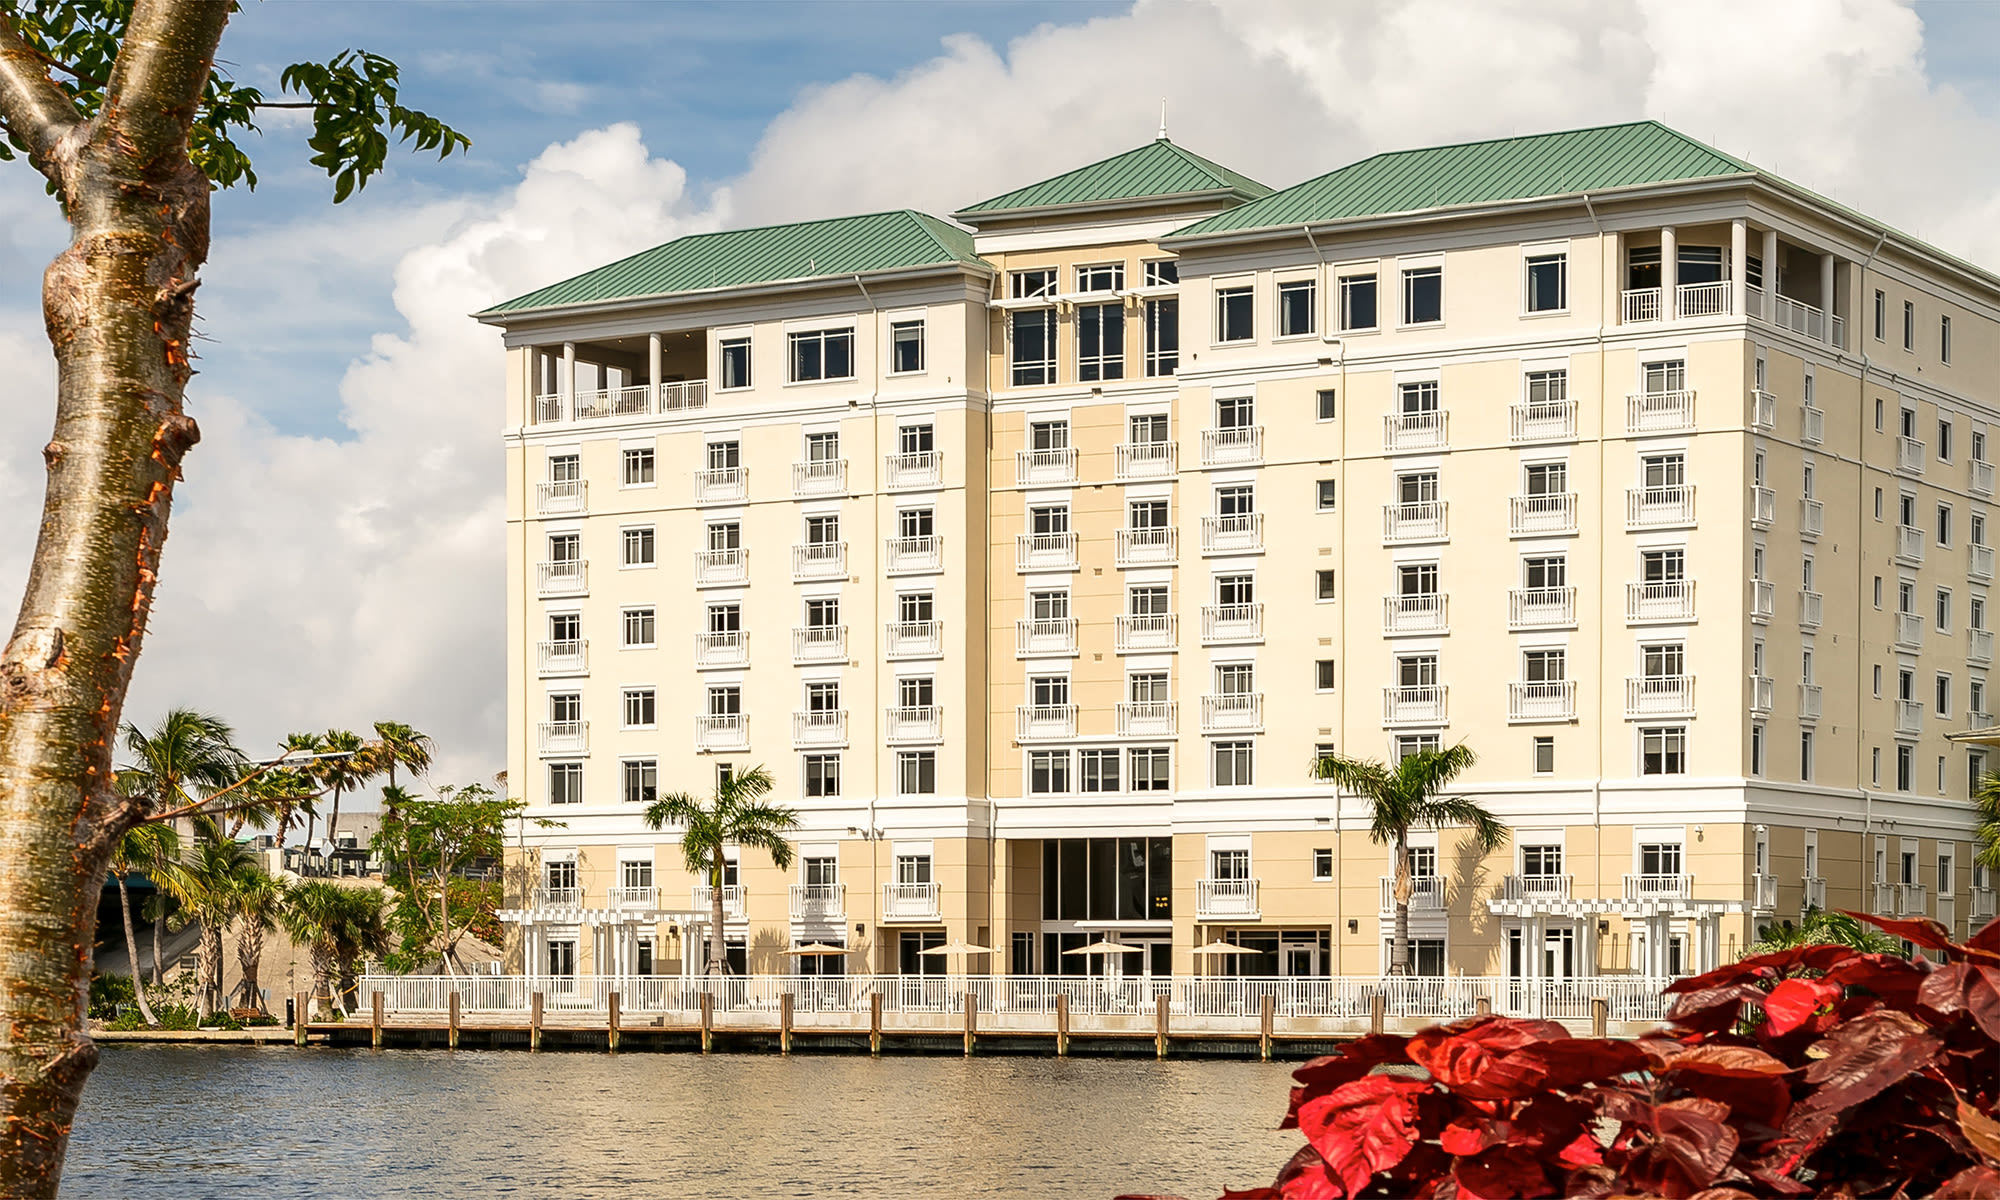 Senior living at The Meridian at Waterways in Fort Lauderdale, Florida.